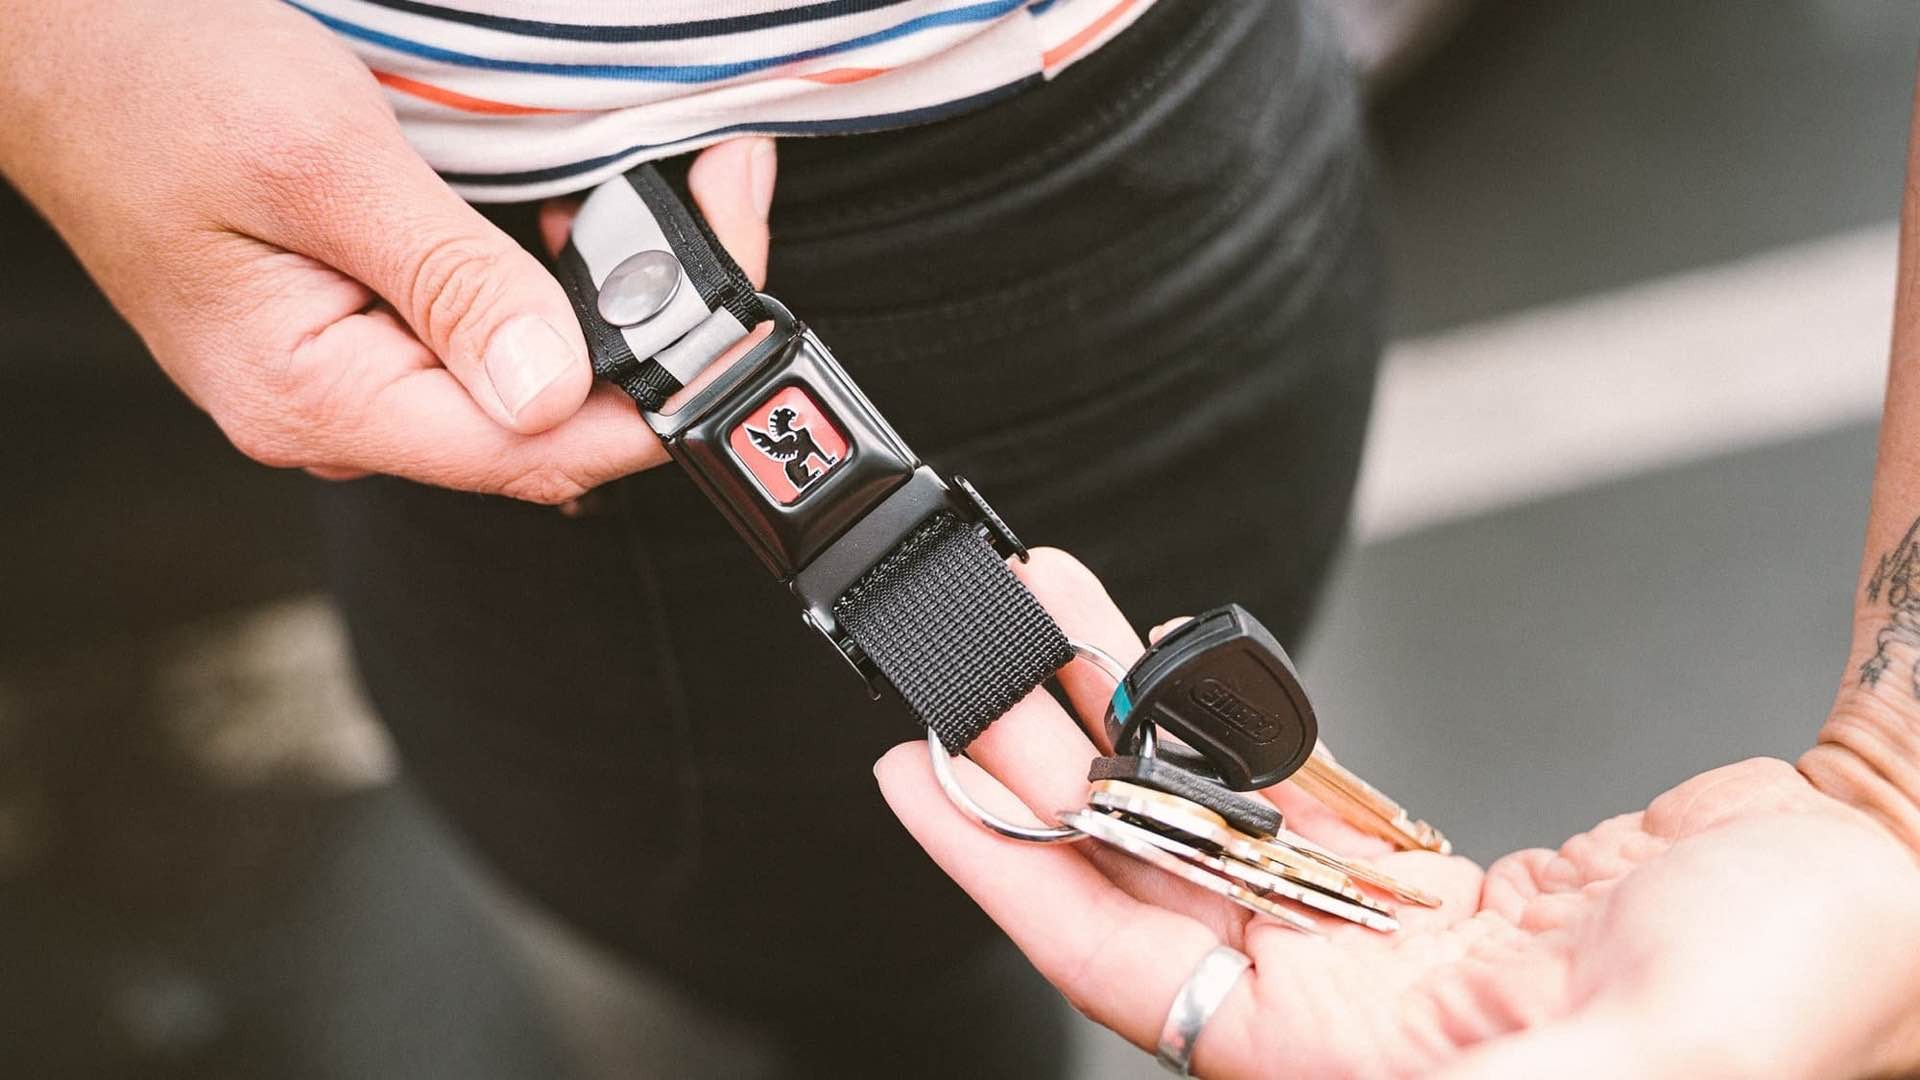 chrome-industries-mini-buckle-quick-release-keychain-lifestyle